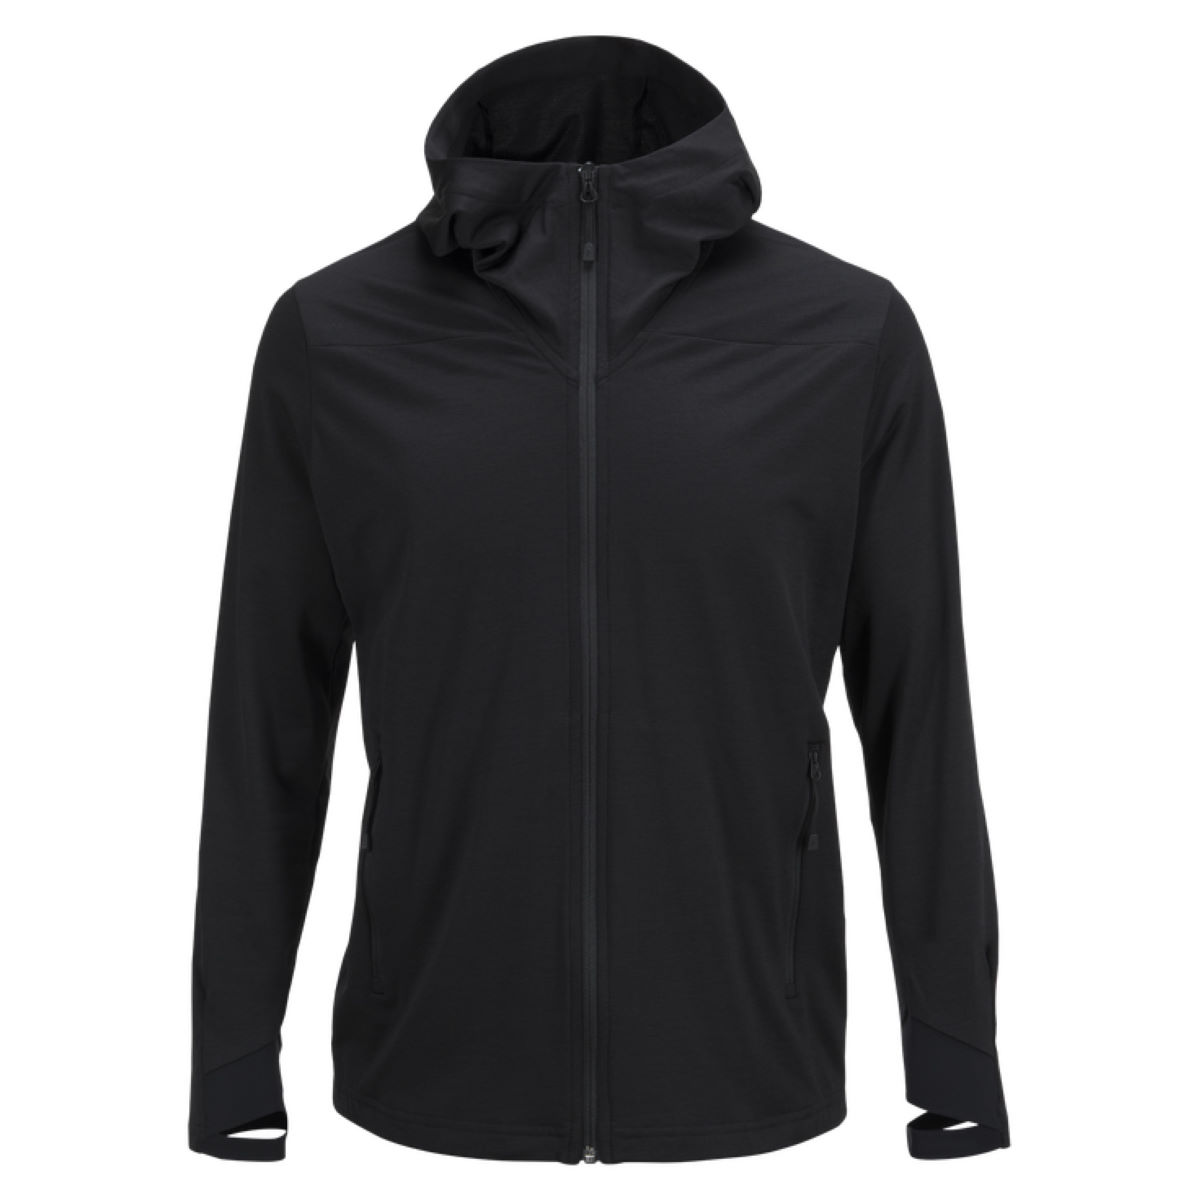 Veste Peak Performance Civil Merino (capuche) - S Noir